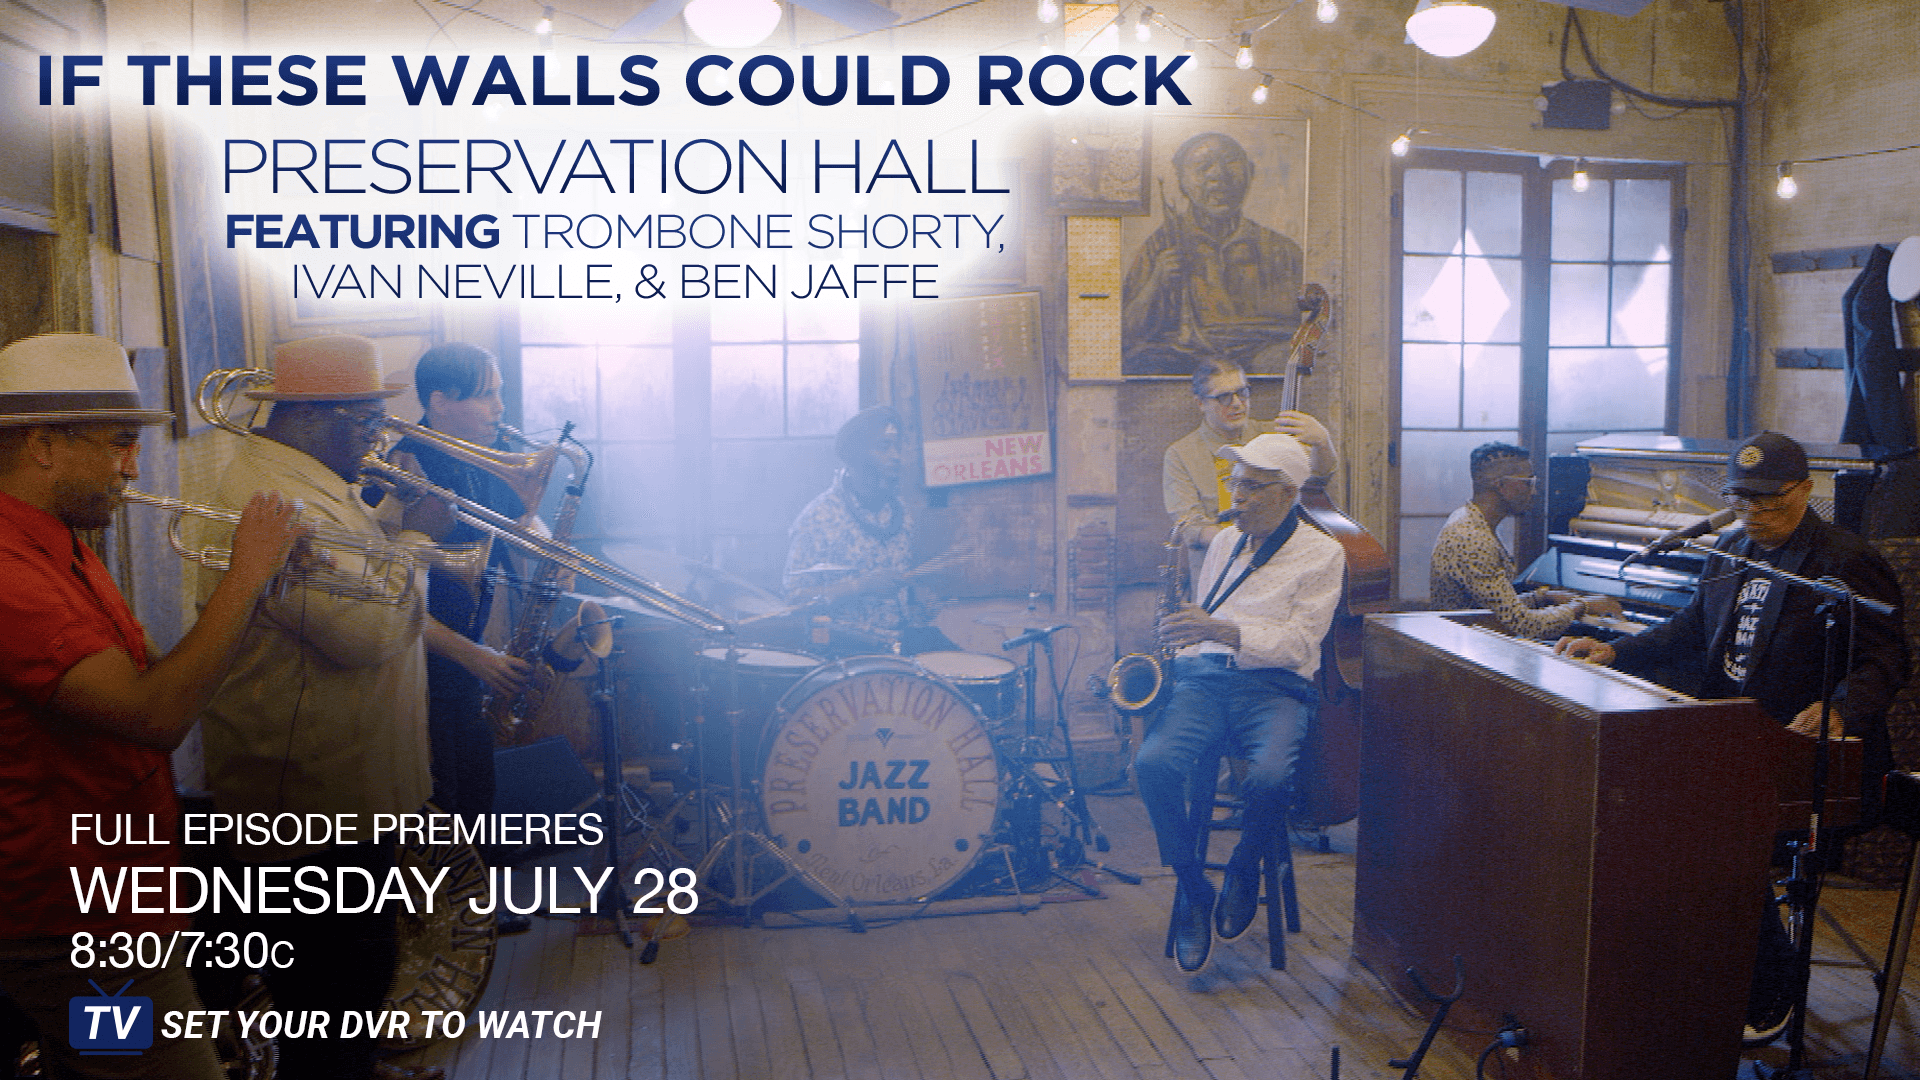 SNEAK PEEK: Preservation Hall | If These Walls Could Rock